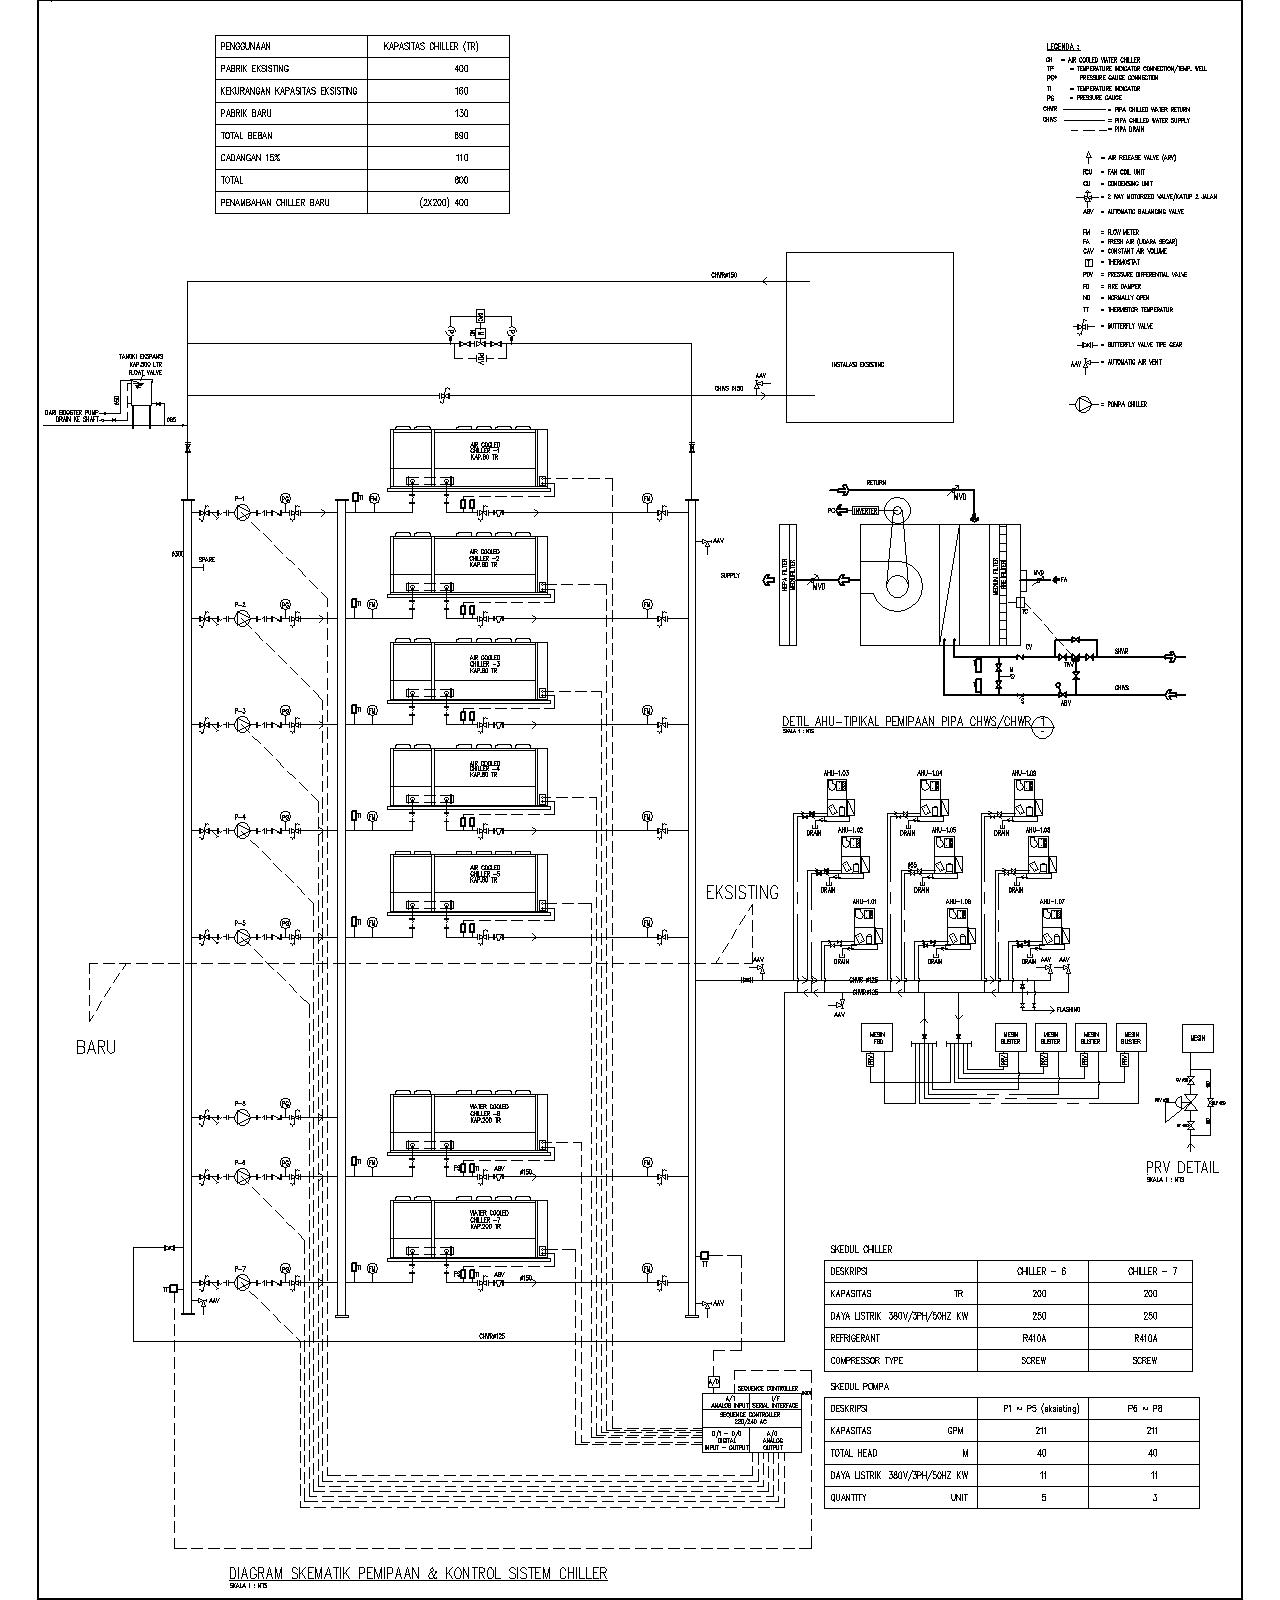 Building Utilities: Water Cooled Chiller Schematic Diagram on